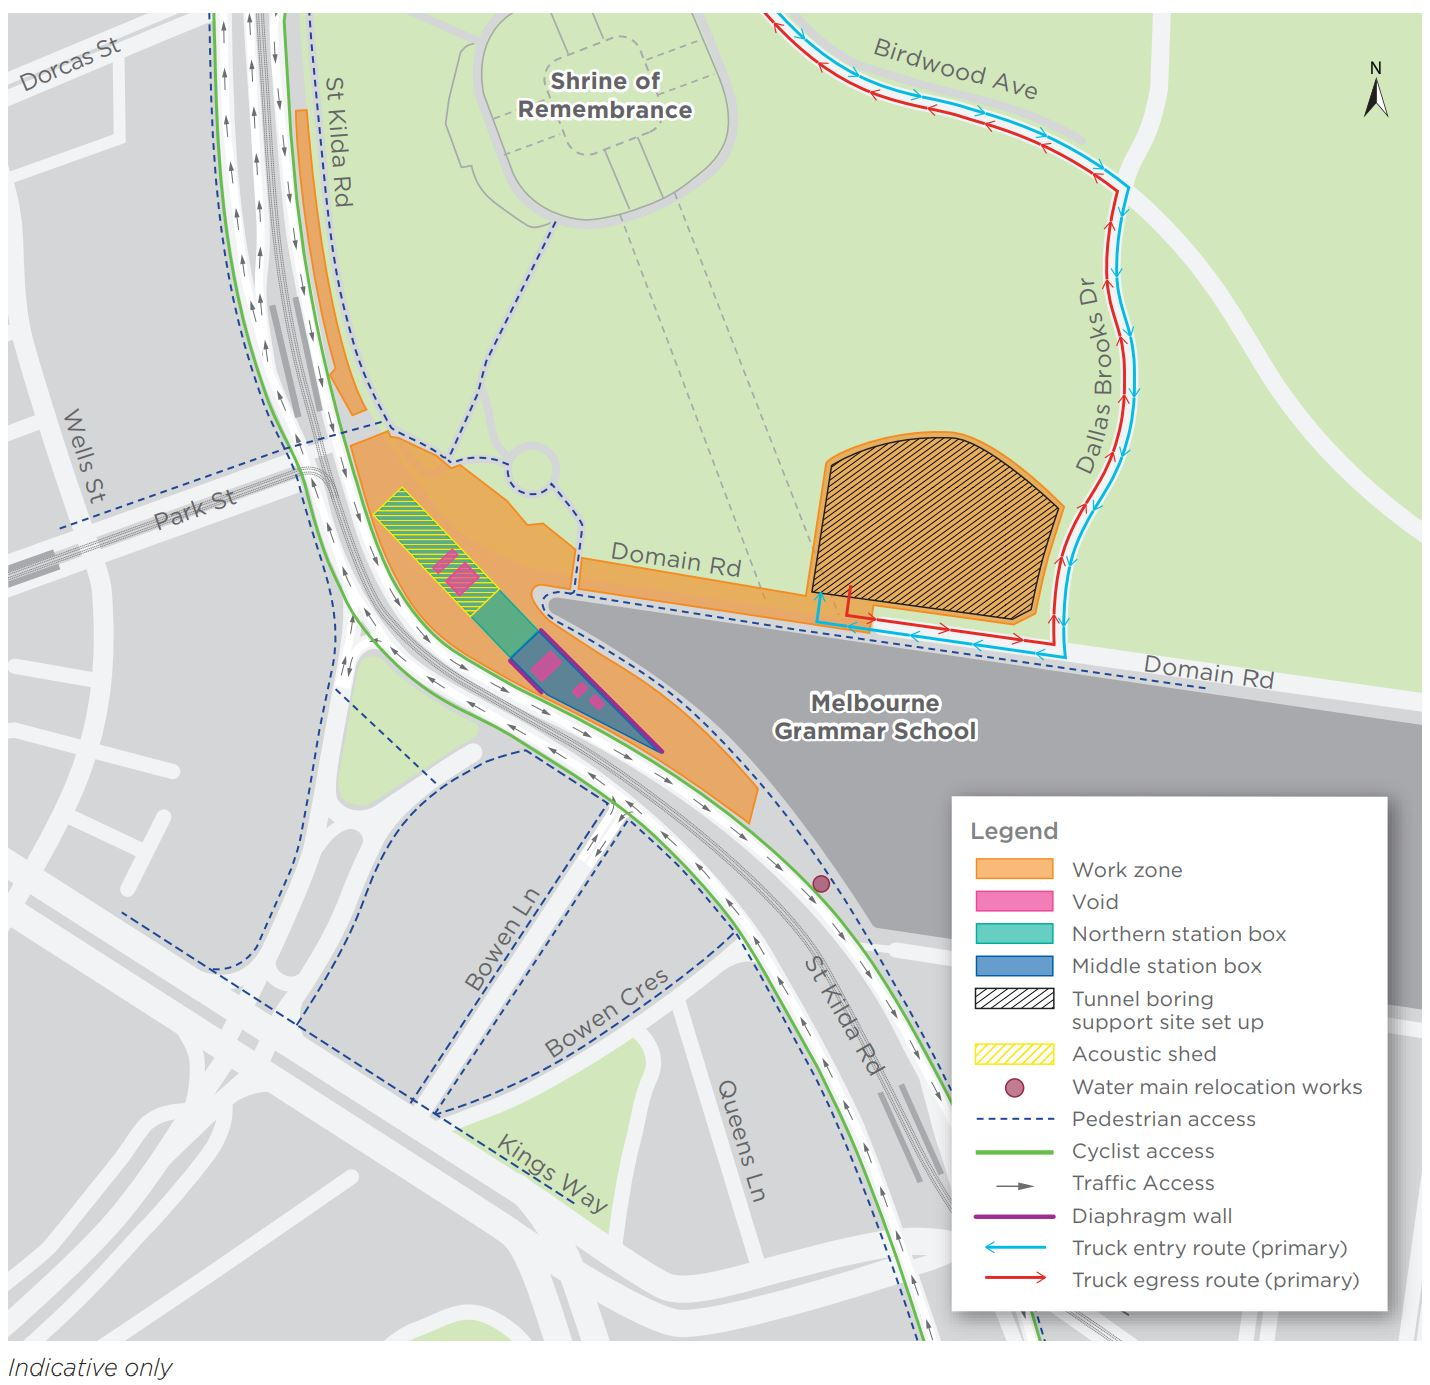 Map of Domain site including changes to pedestrian access